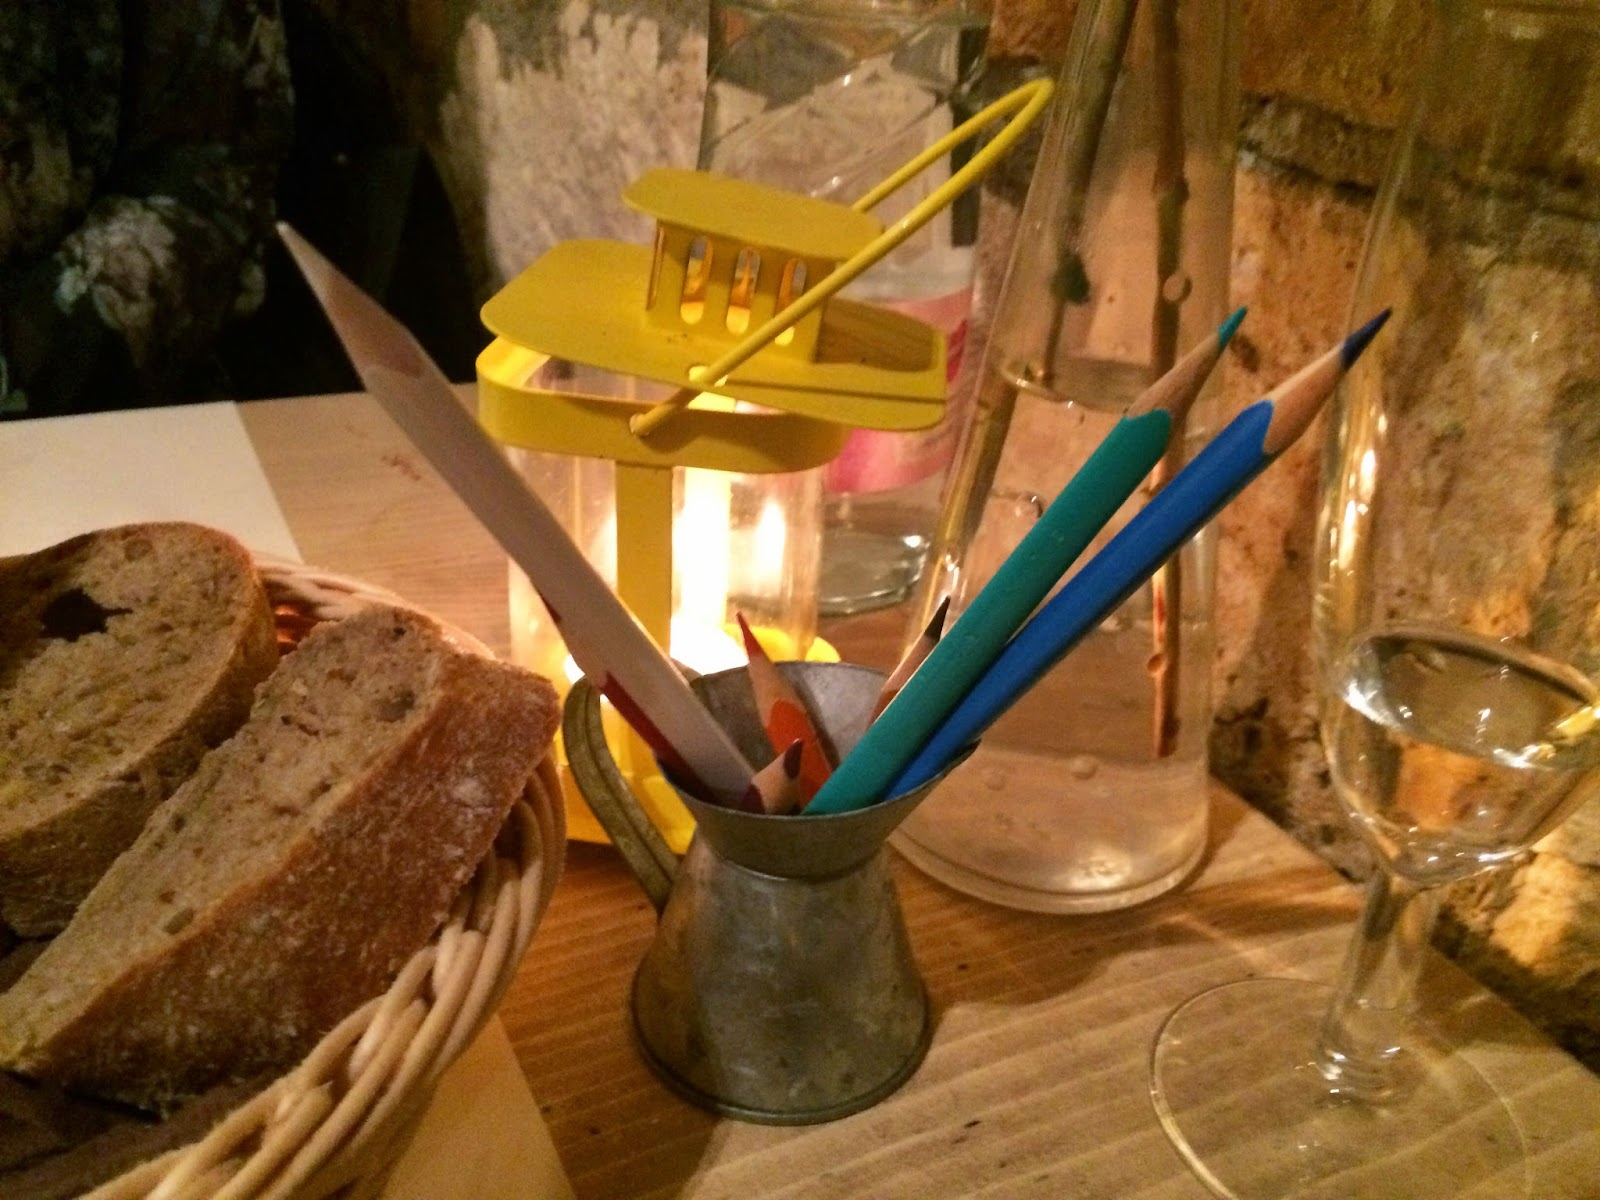 A pot of pencil crayons - Zeller Bistro, Budapest